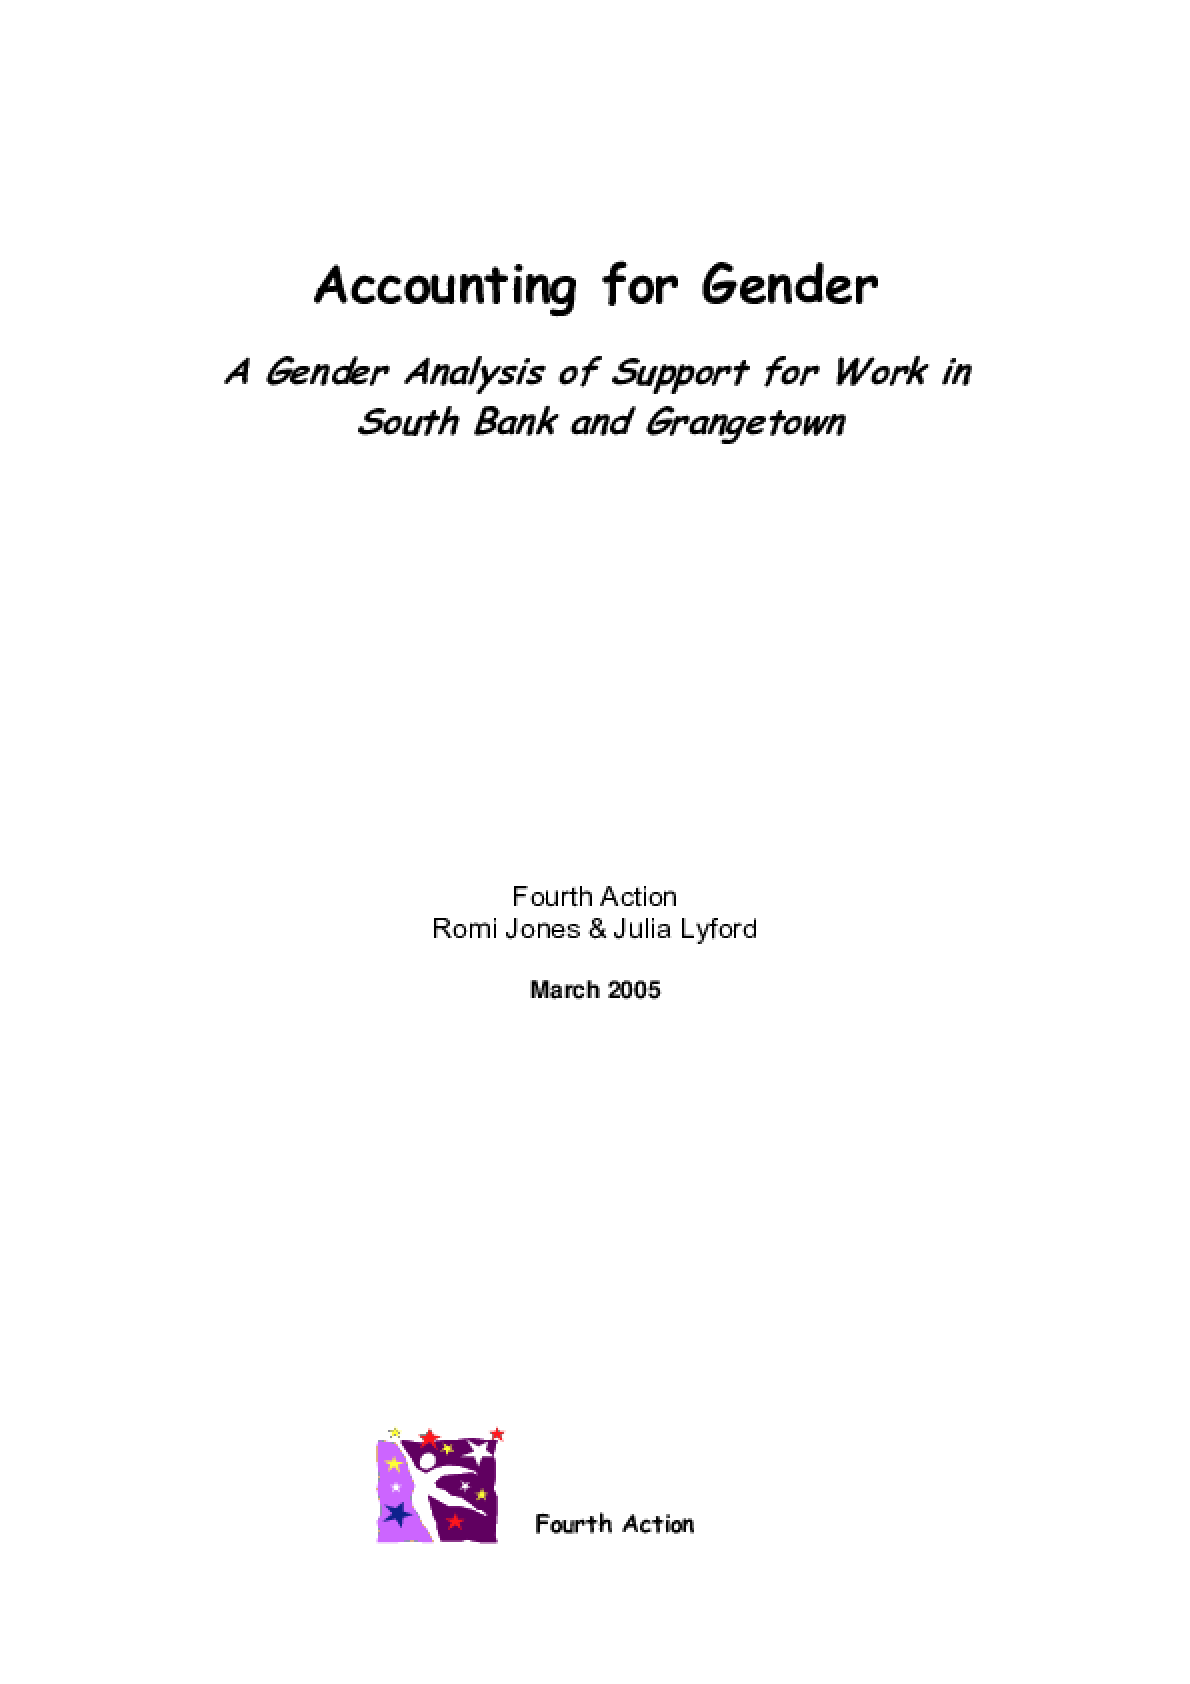 Accounting for Gender: A gender analysis of support for work in South Bank and Grangetown